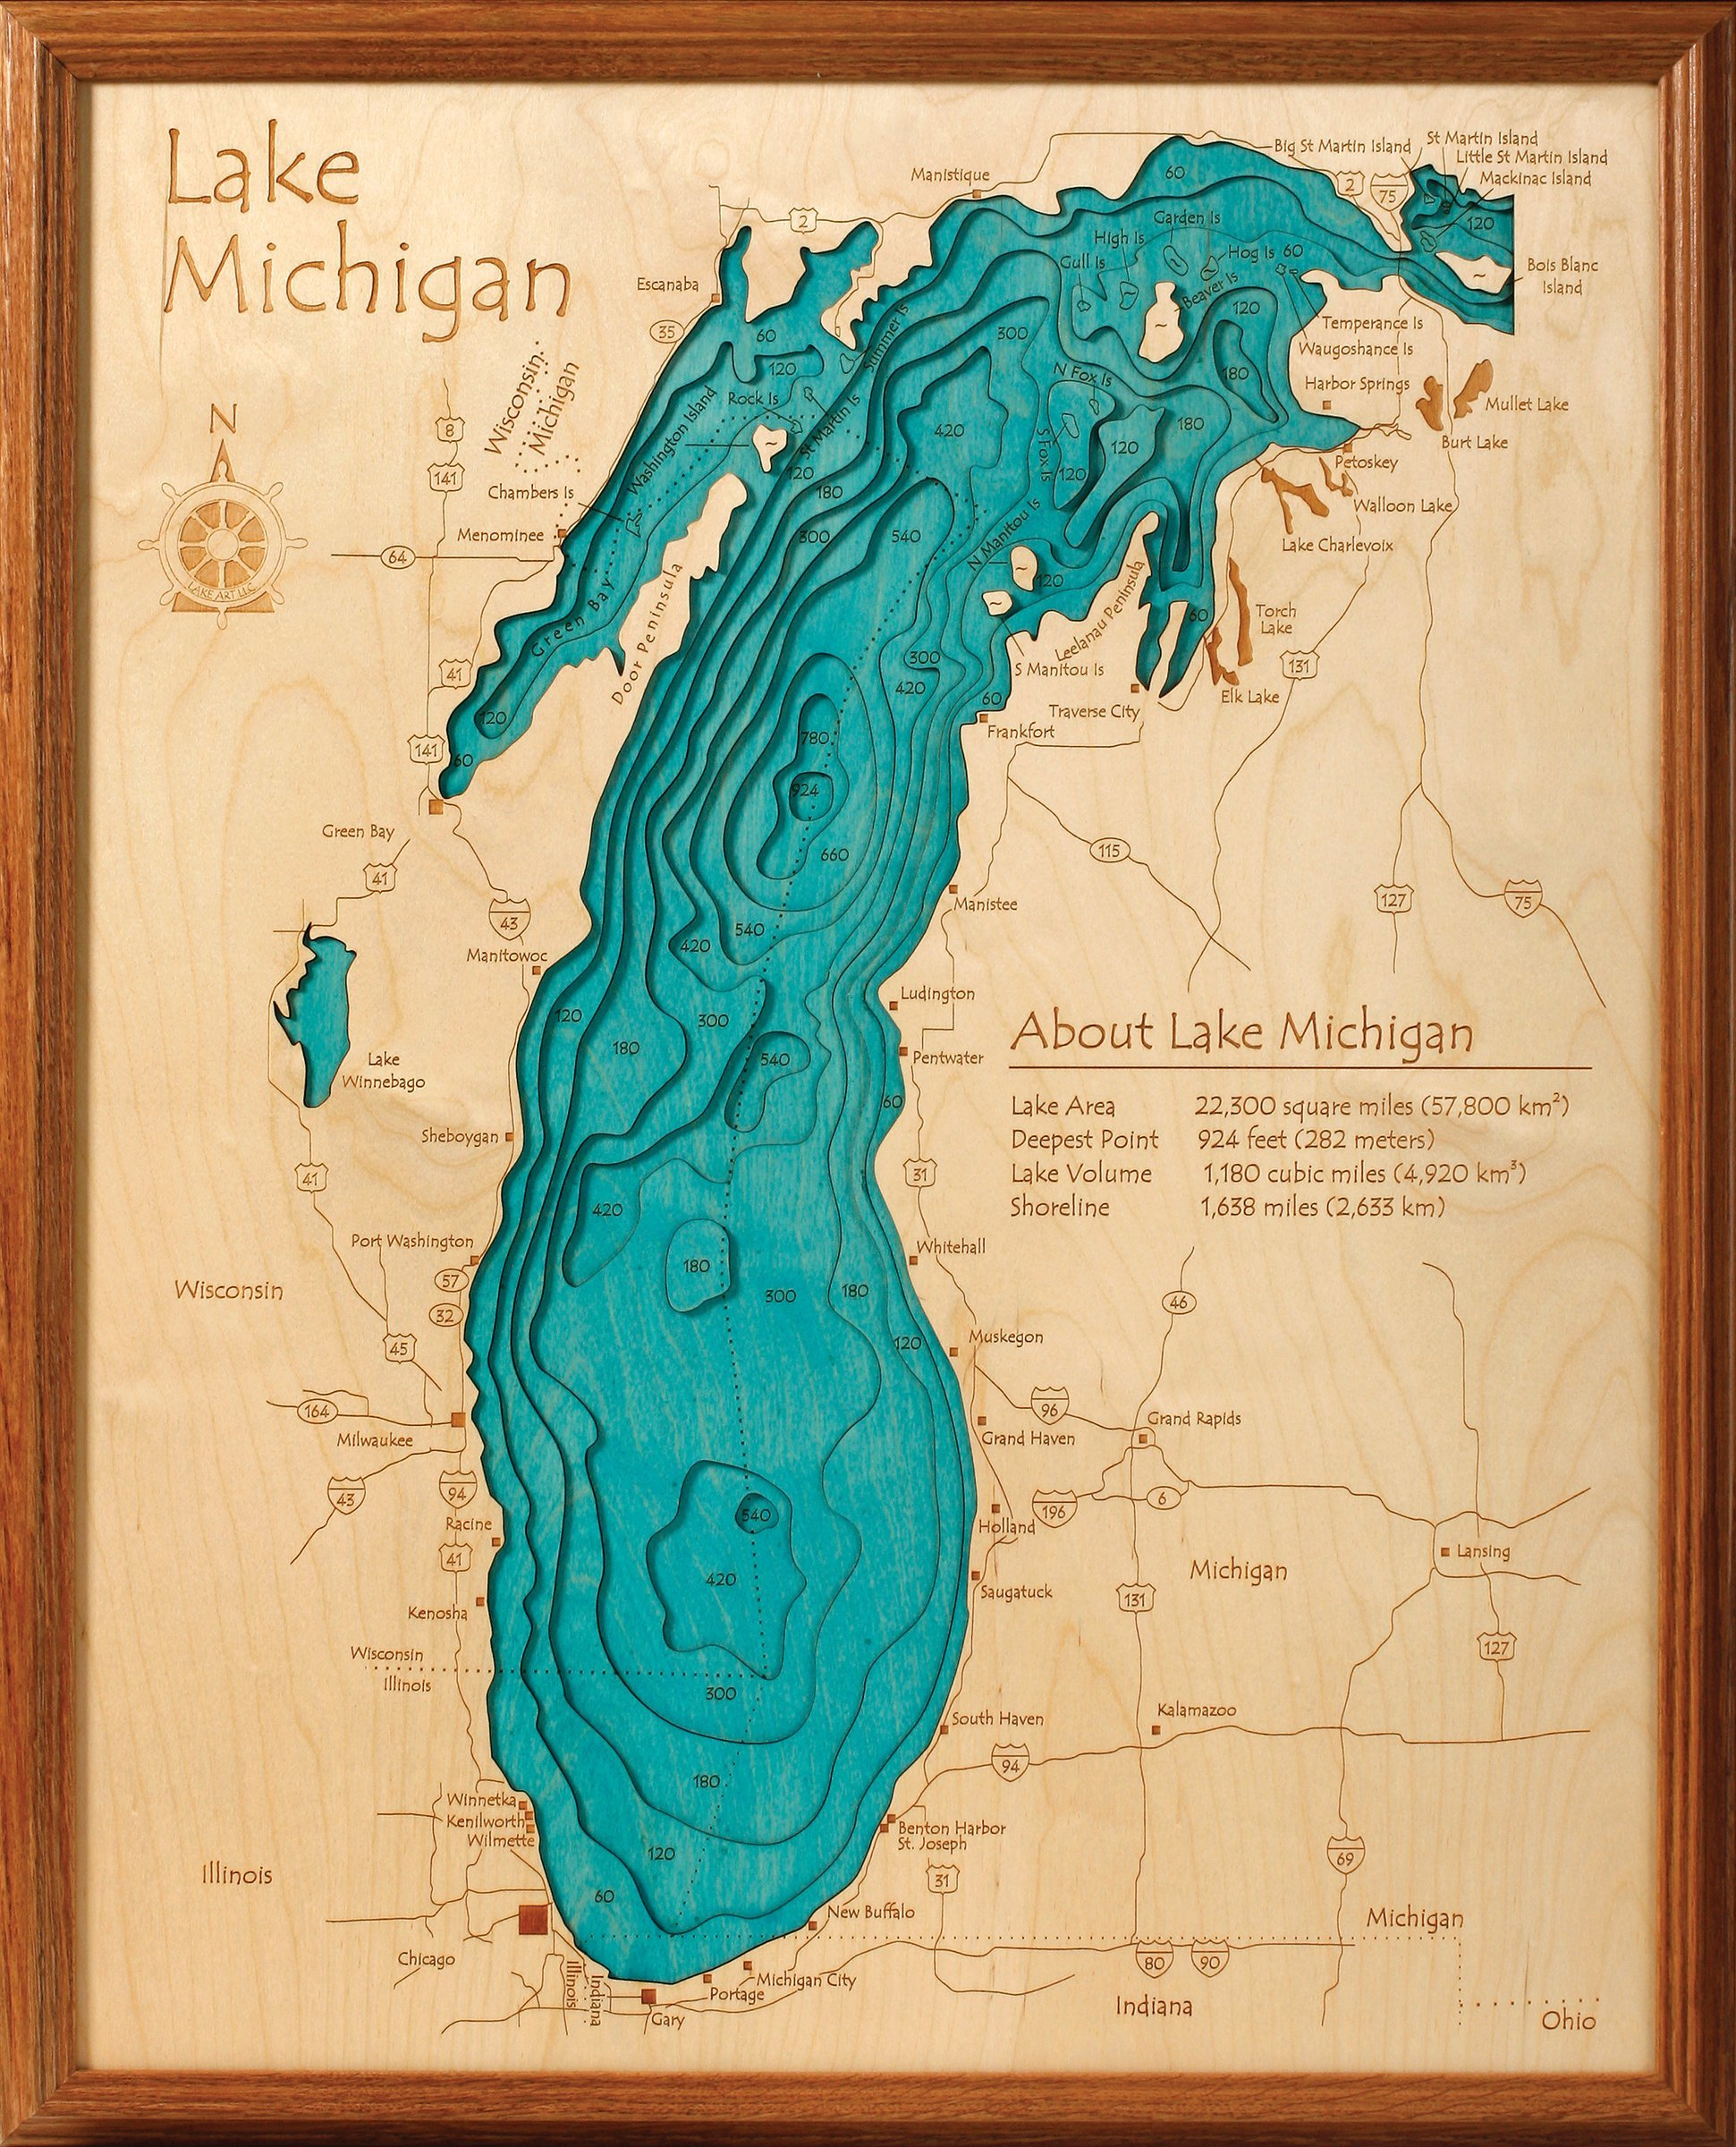 Finger Lakes of New York in Livingston Ontario Yates Seneca Cayuga, NY - 3D Map 16 x 20 IN - Laser carved wood nautical chart and topographic depth map. by Long Lake Lifestyle